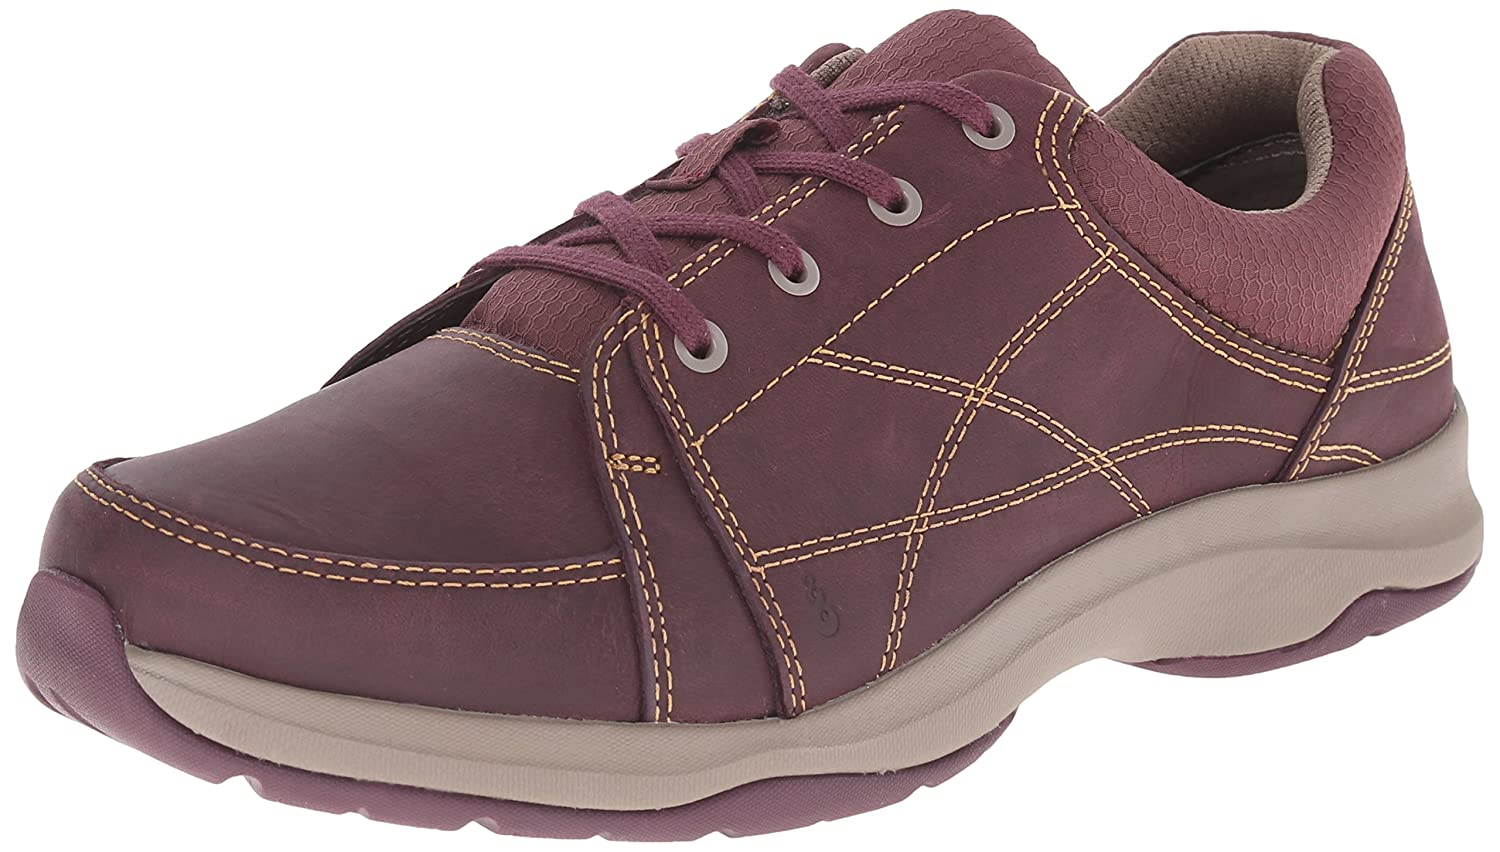 Ahnu Women's Taraval Walking Shoe B00RLDY69A 5 B(M) US|Vintage Port